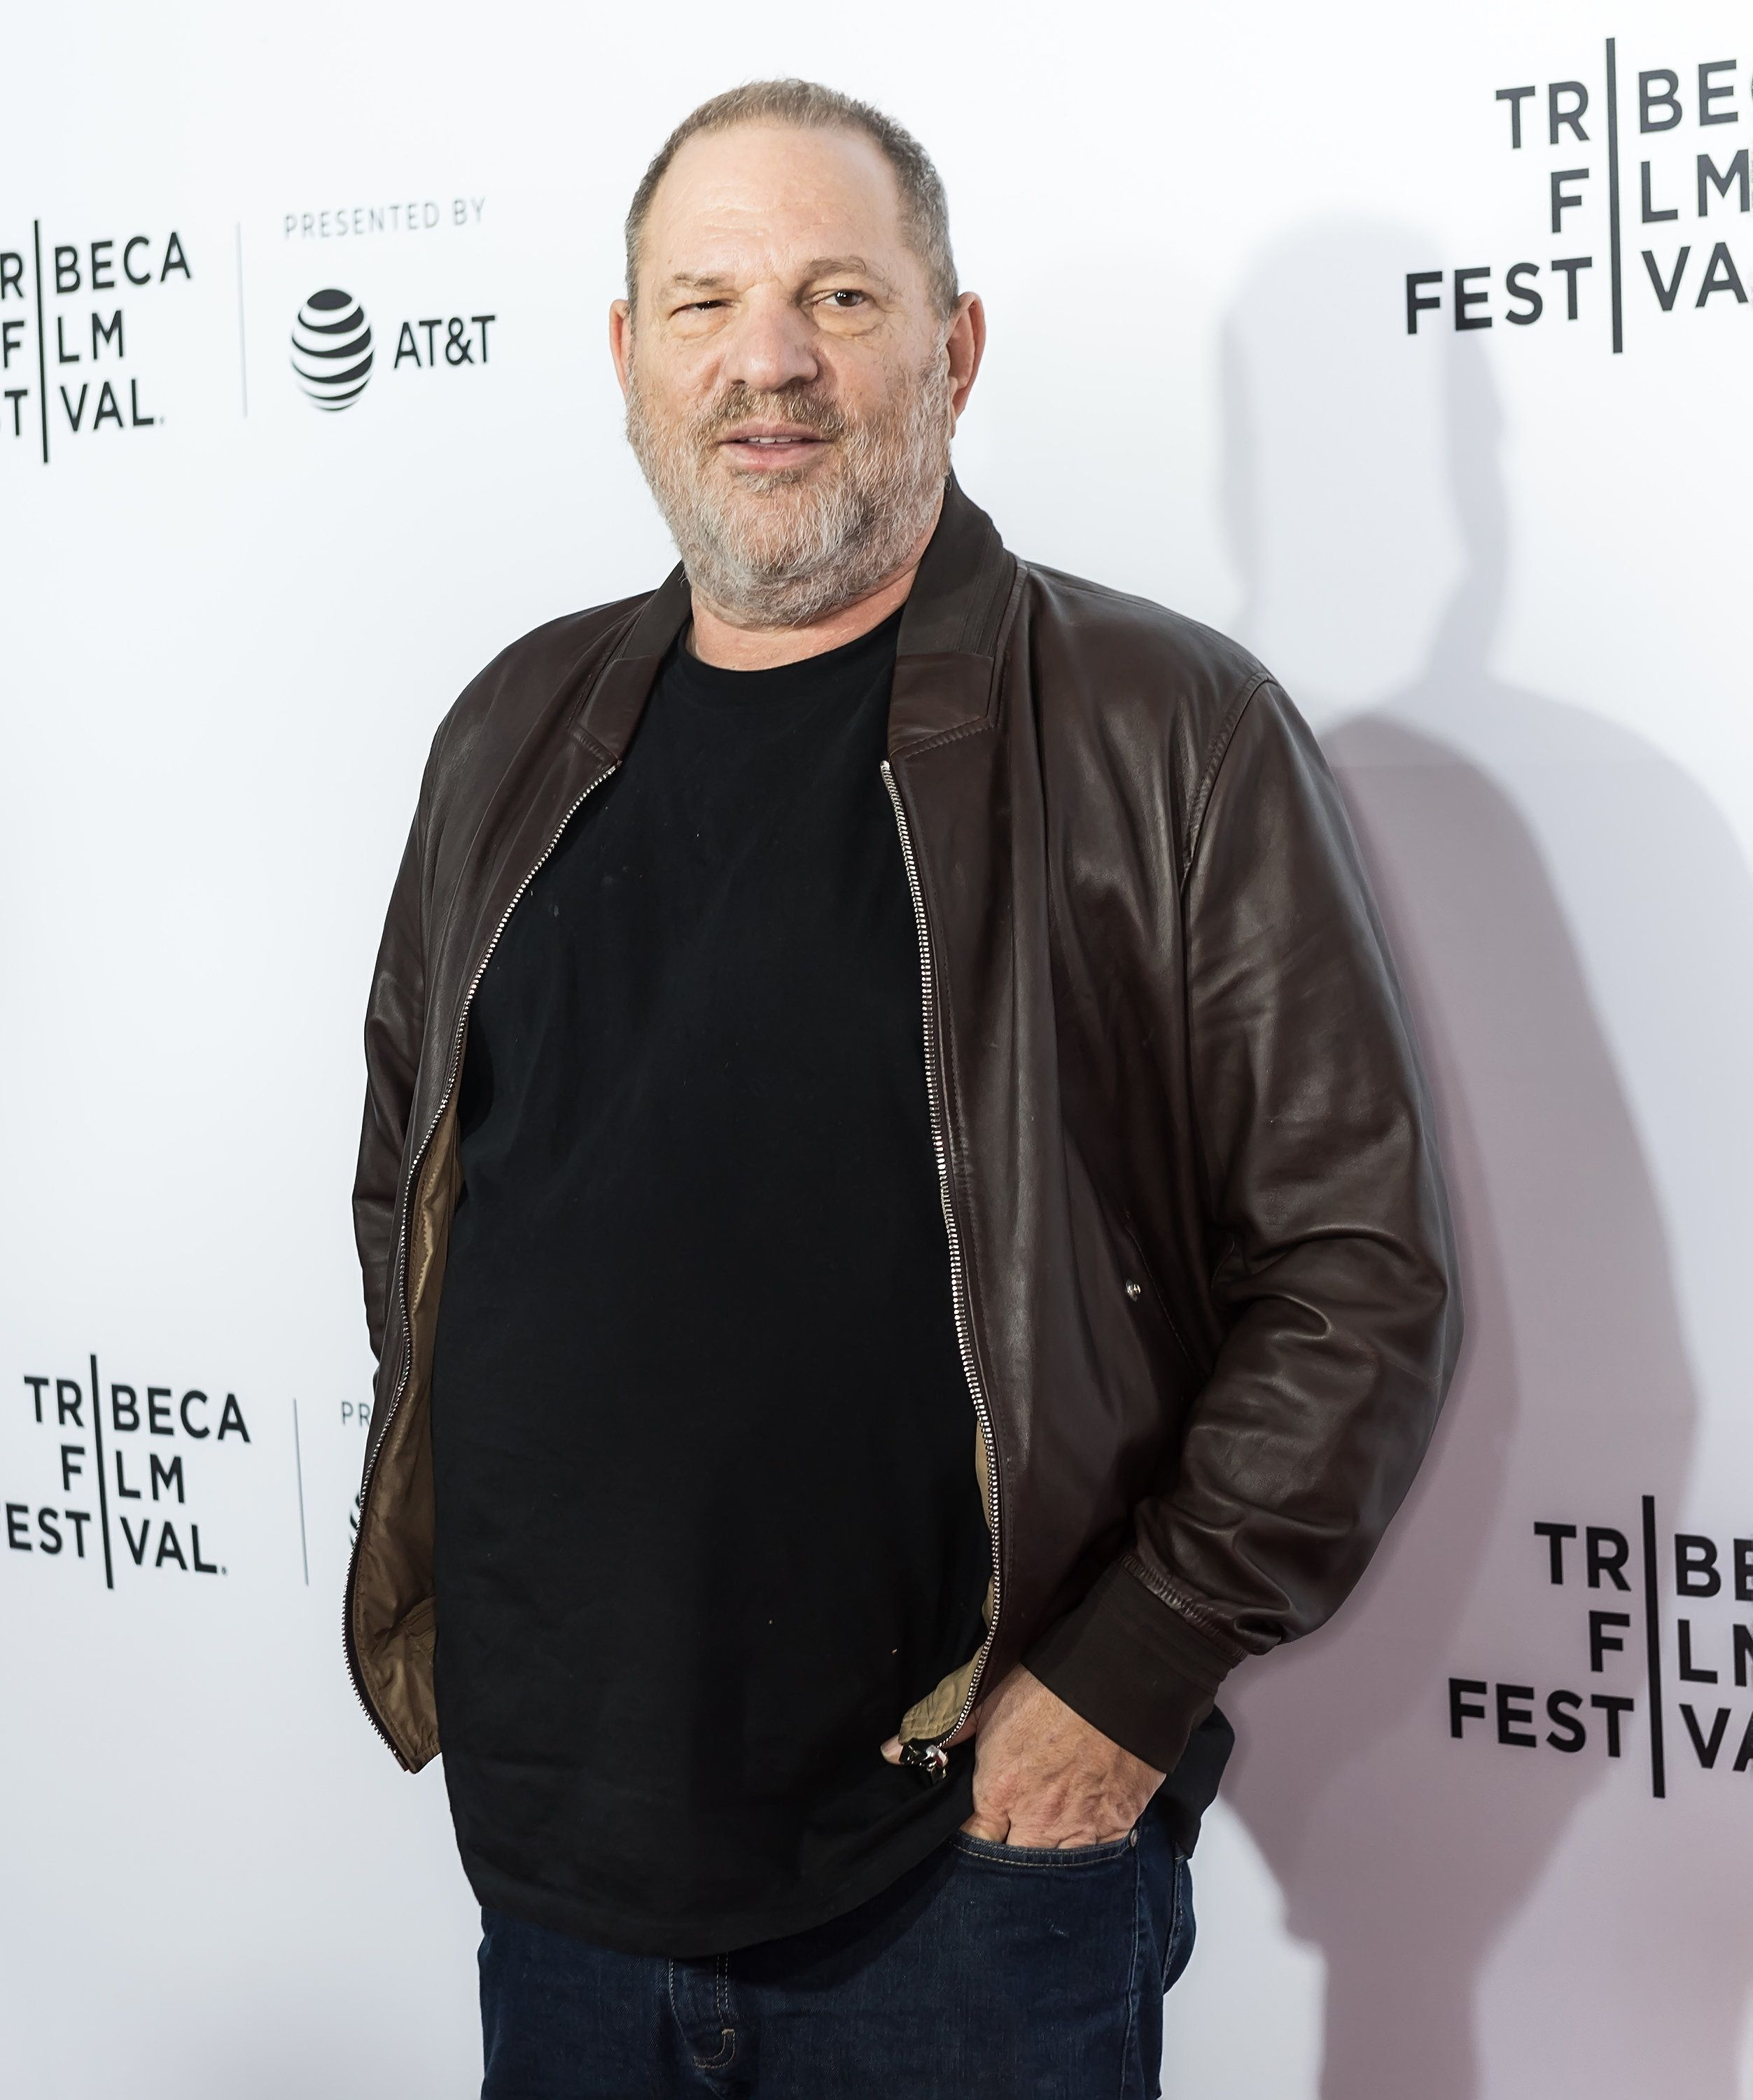 In New Accusations, Netflix Producer Says Harvey Weinstein Raped, Threatened